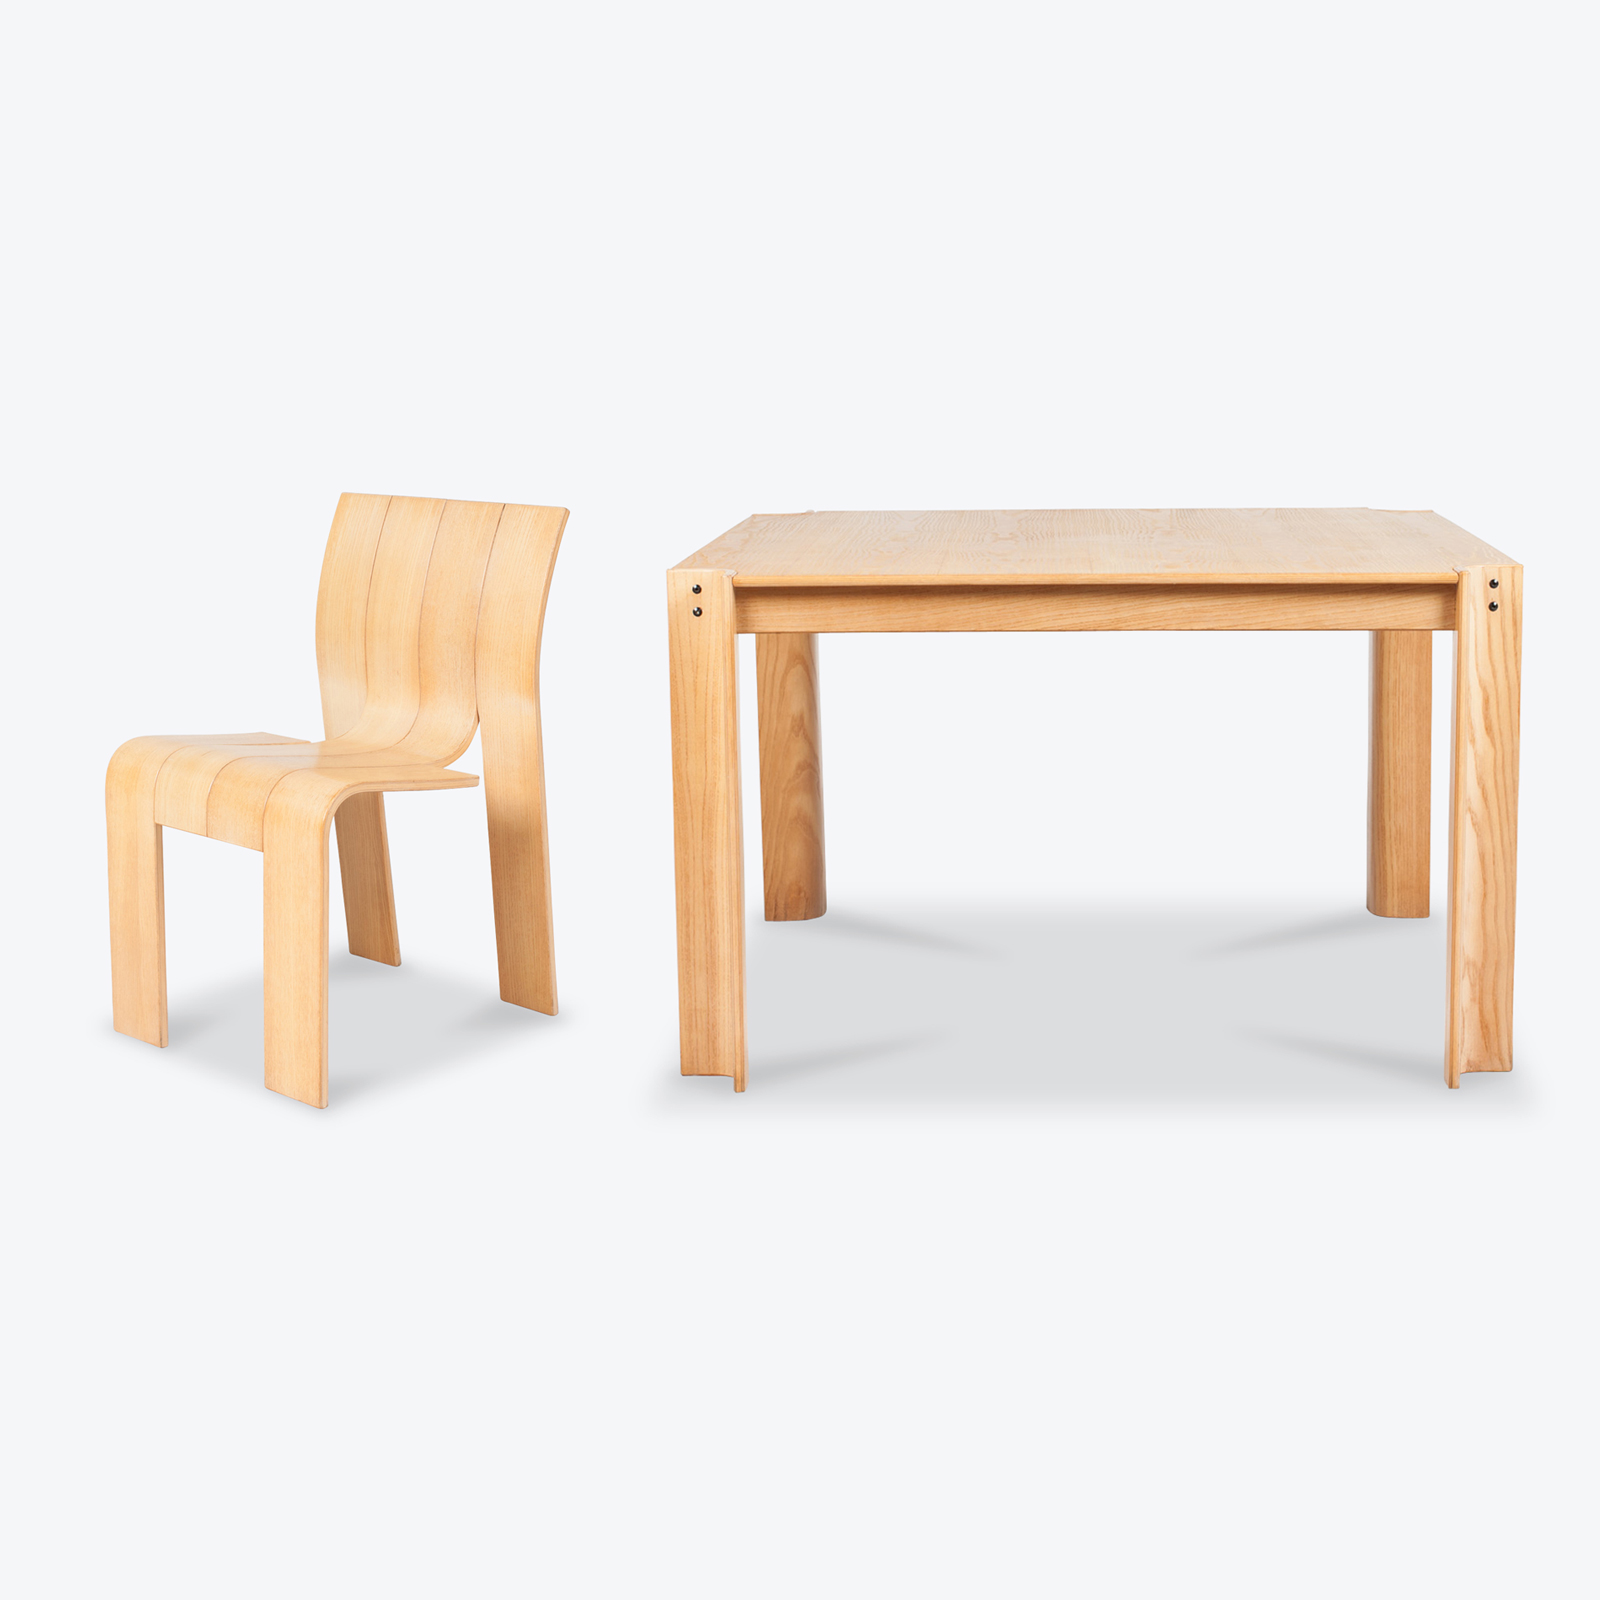 The 'strip' Dining Table And Chairs By Gijs Bakker For Castelijn In Oak 1960s Netherlands 05